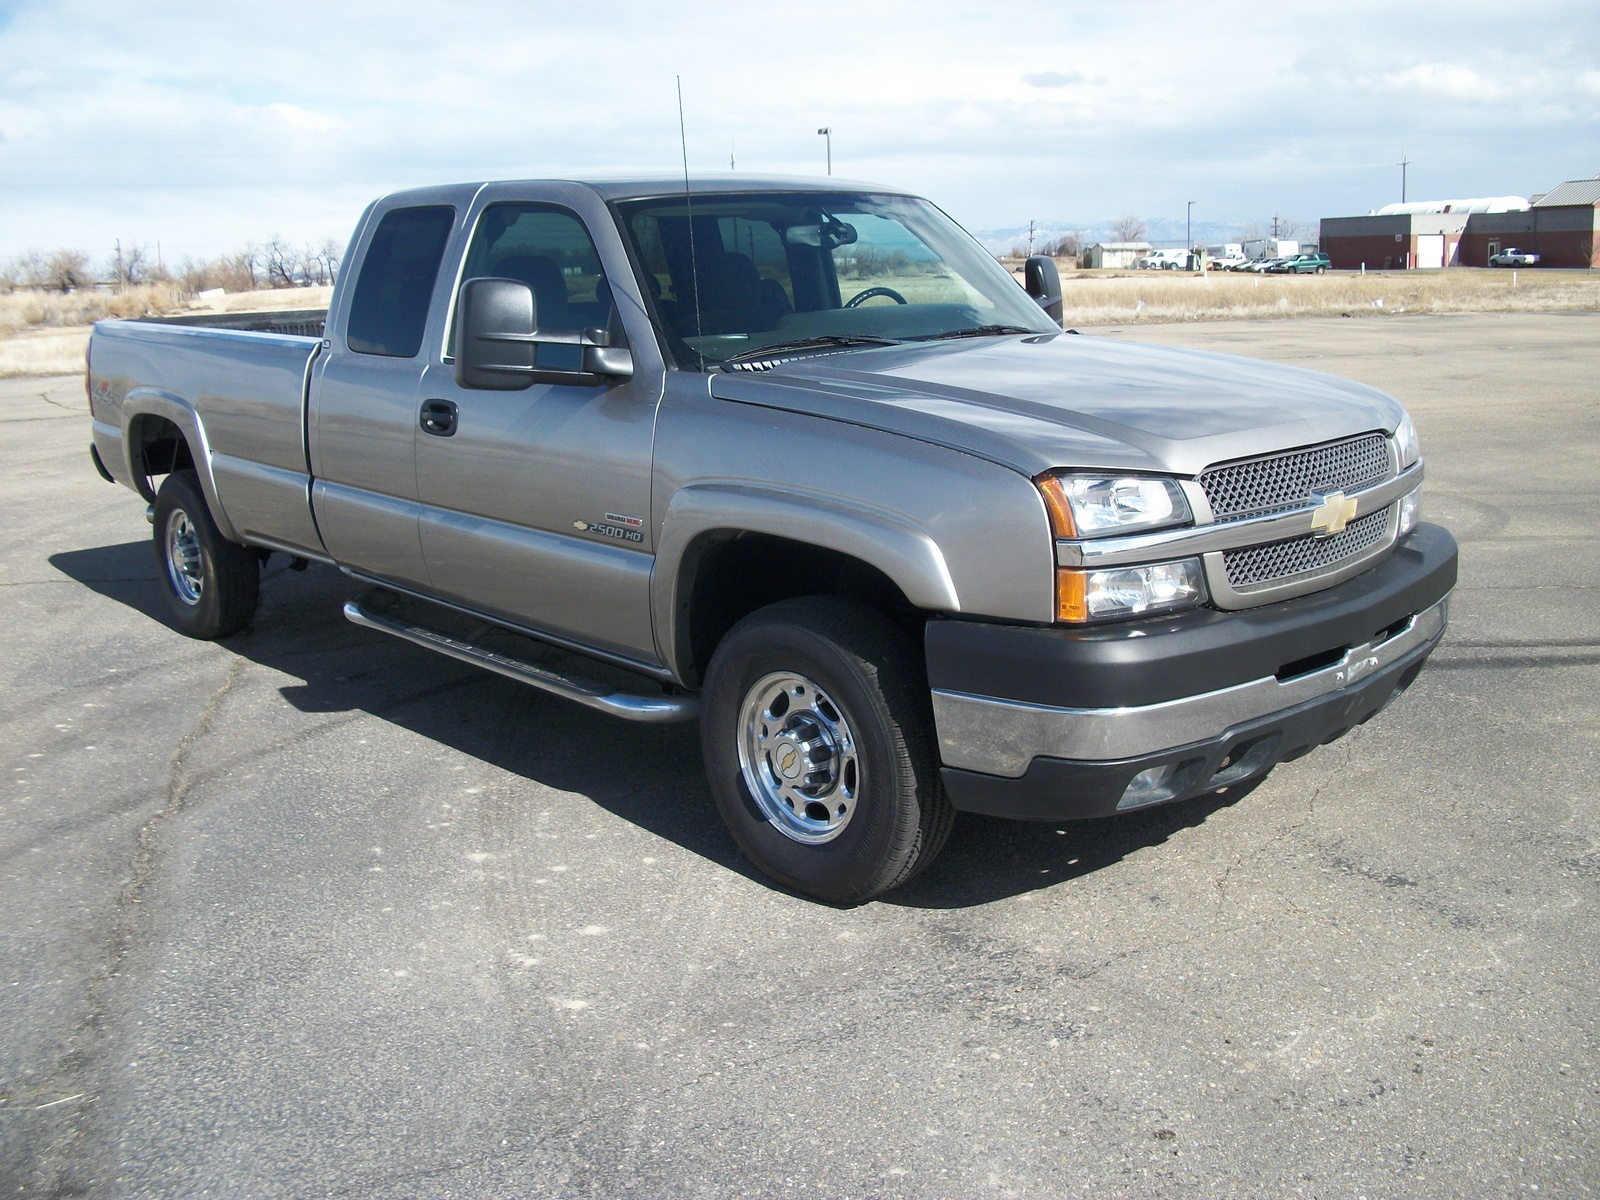 used 2003 chevrolet silverado 2500hd extended cab 4wd html autos post. Black Bedroom Furniture Sets. Home Design Ideas